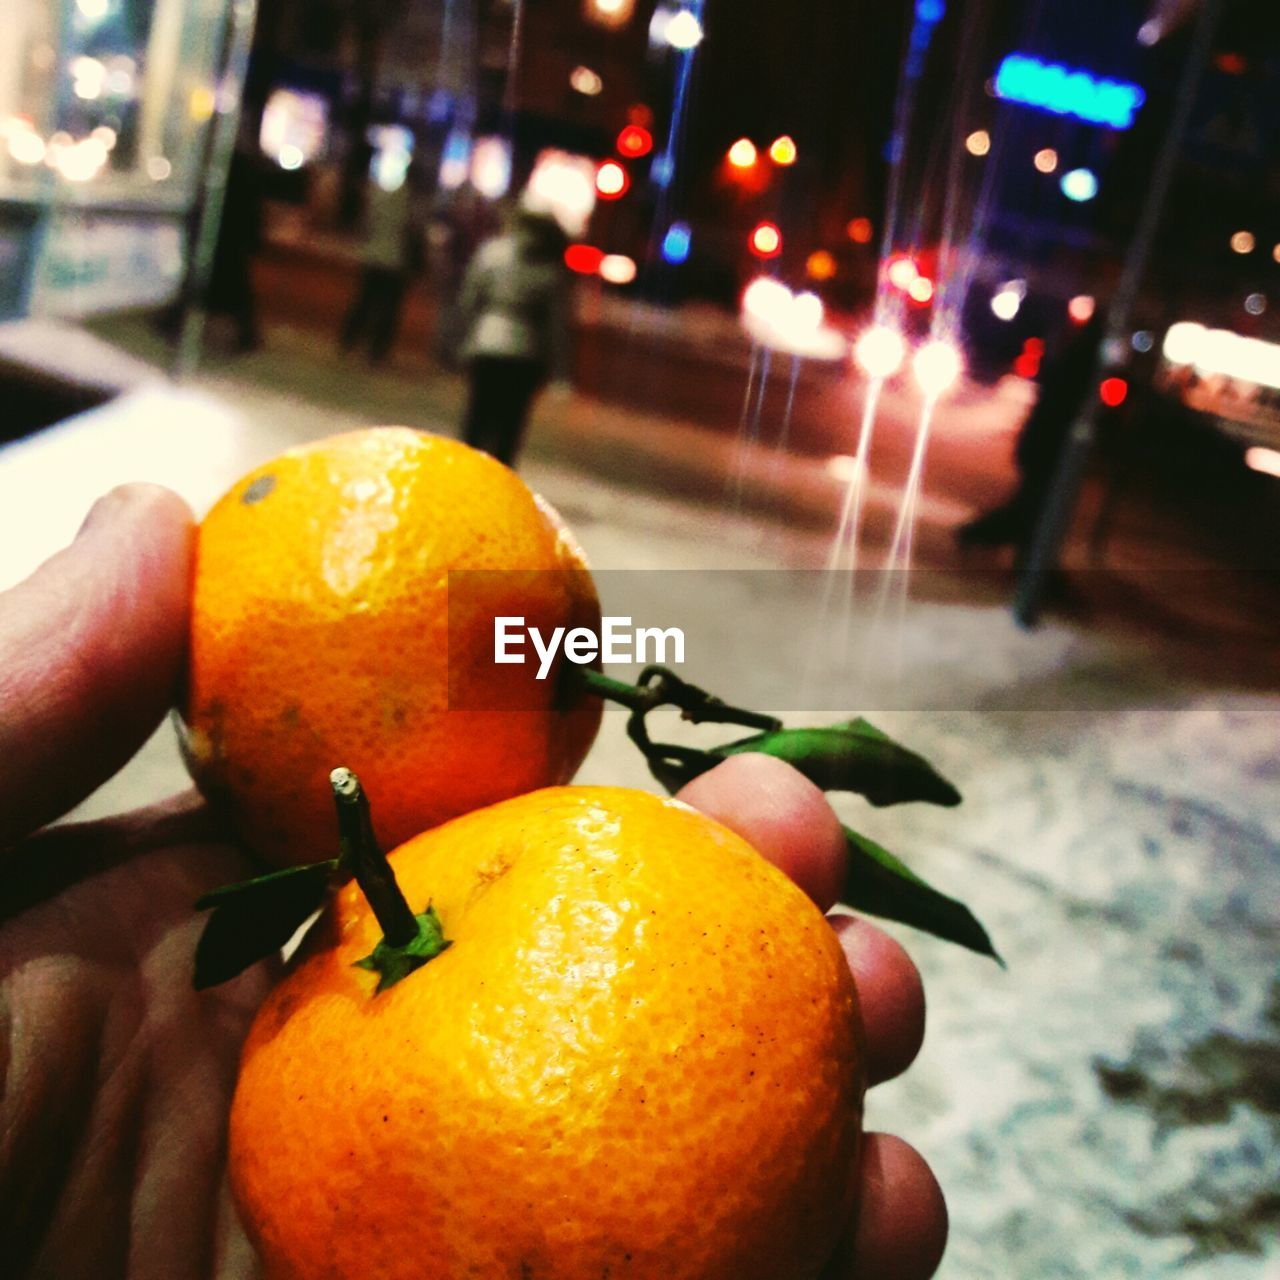 fruit, food and drink, healthy eating, orange - fruit, citrus fruit, food, human hand, freshness, focus on foreground, orange color, close-up, human body part, outdoors, healthy lifestyle, one person, day, people